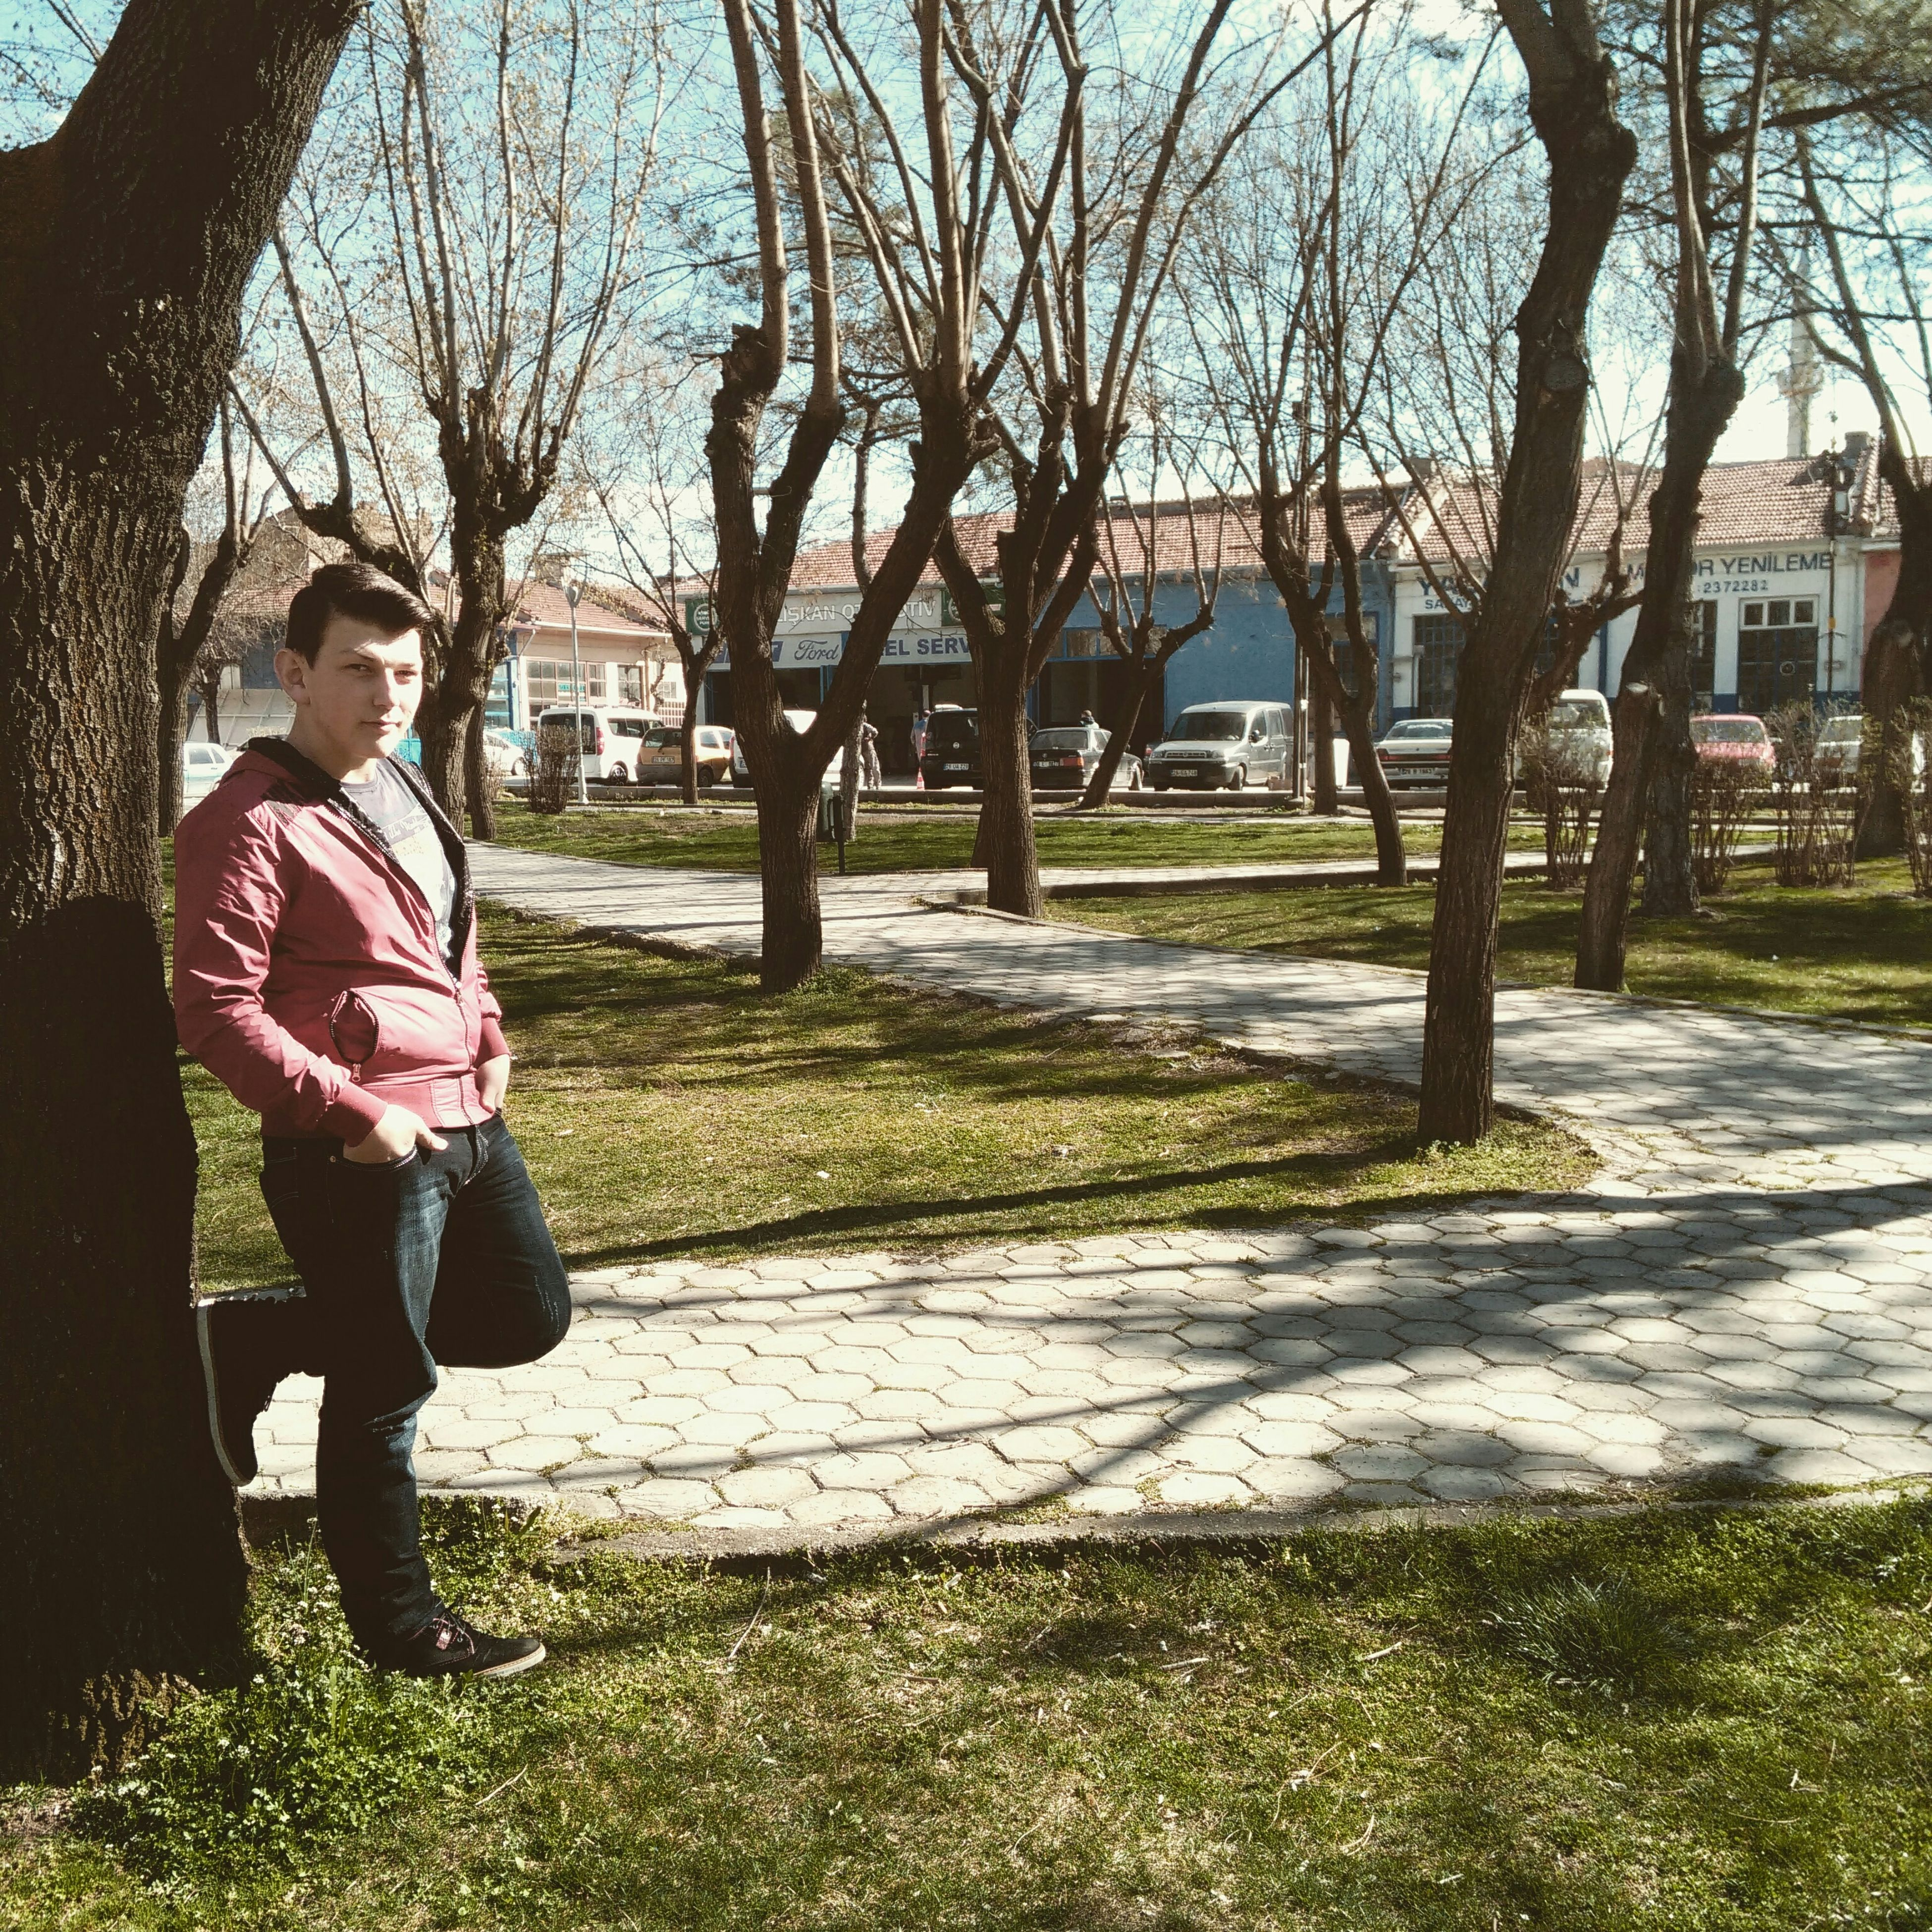 tree, lifestyles, full length, casual clothing, leisure activity, person, building exterior, built structure, standing, childhood, architecture, grass, elementary age, girls, park - man made space, young adult, boys, sunlight